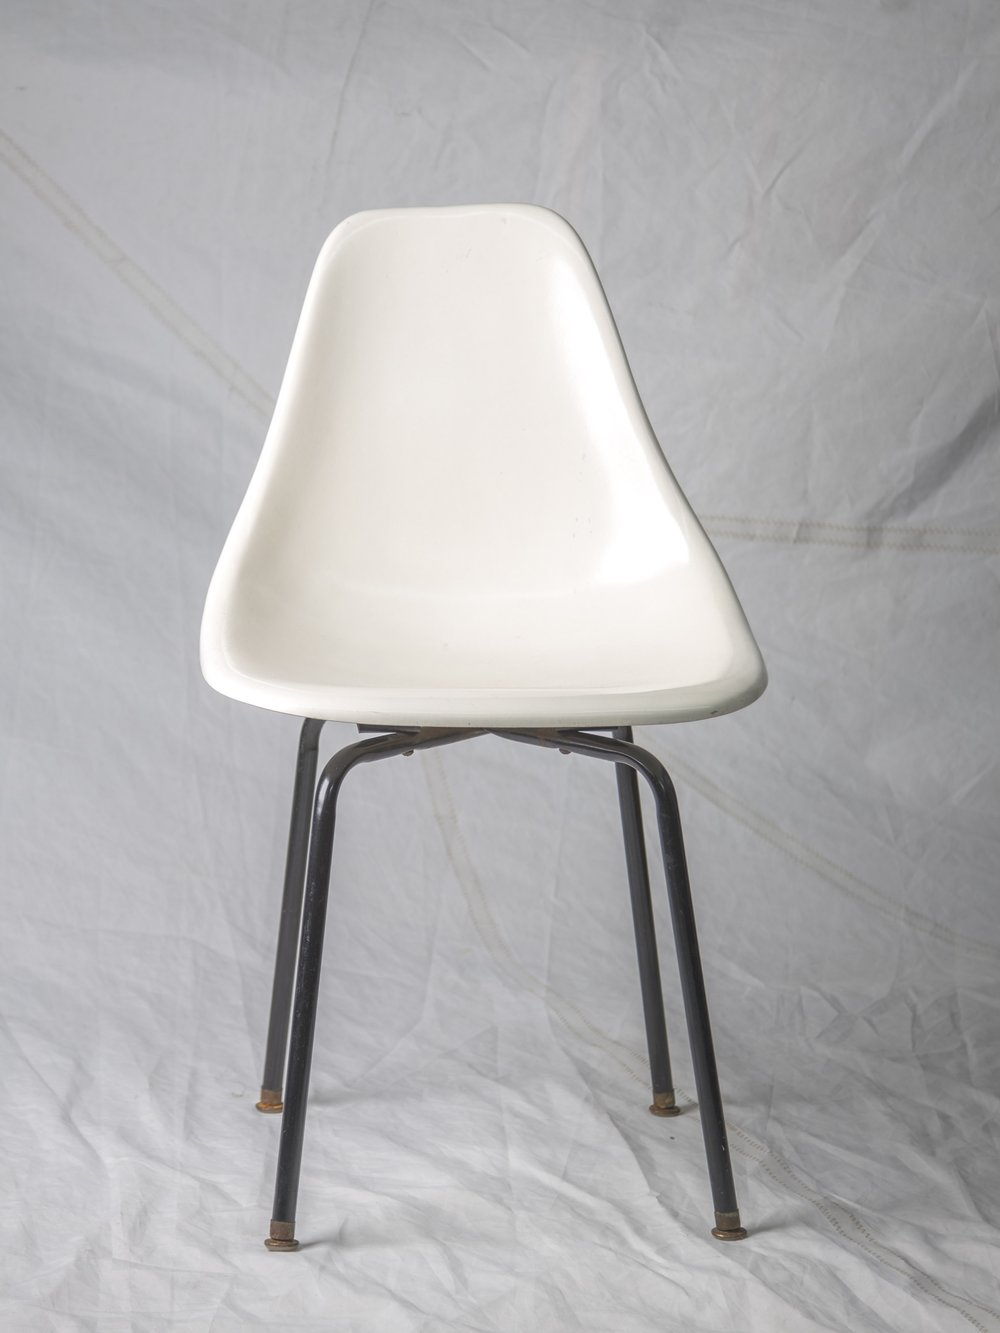 CH055 Vintage Fiberglass Shell Chair   $75/week Set of 1